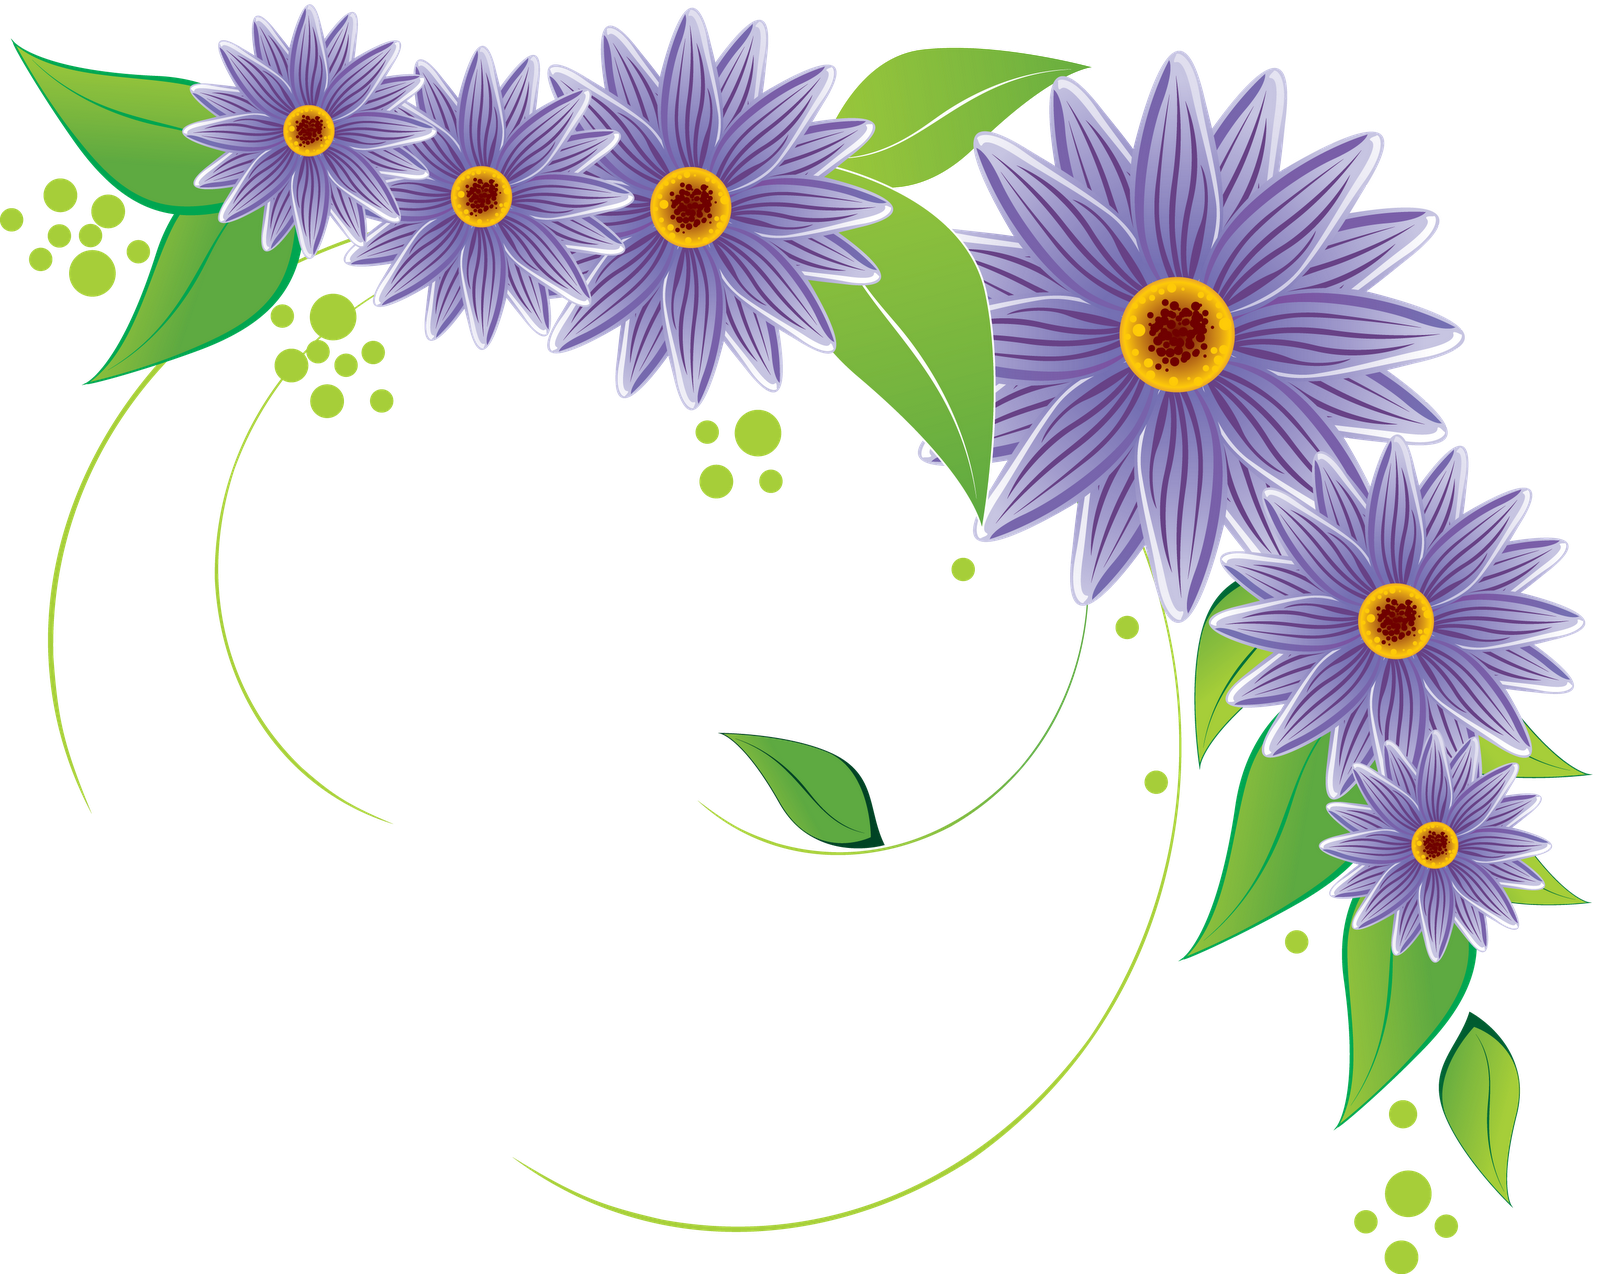 Frames & png: flower vectors various (12)